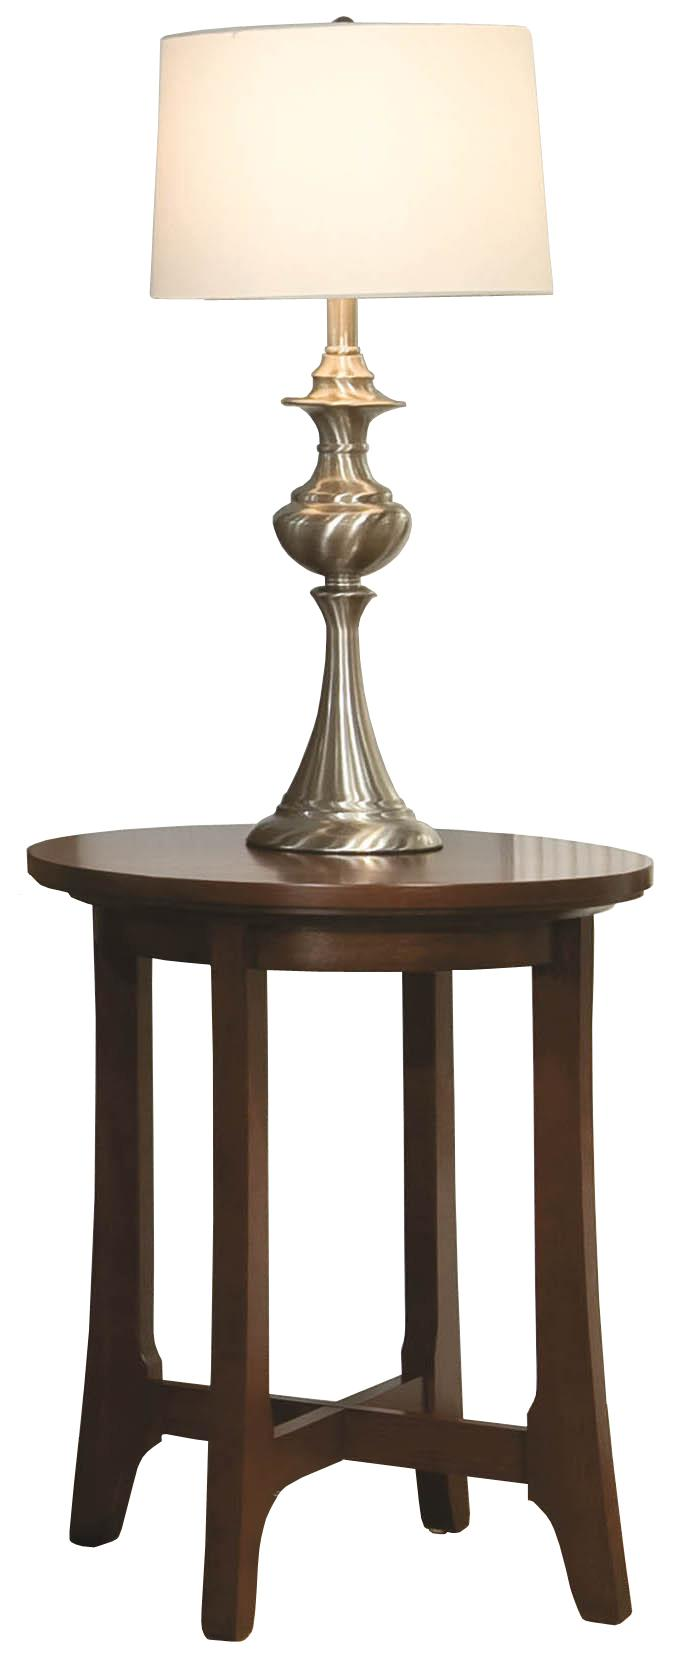 Occasional Tables Durham Westwood Round Lamp Table by Durham at Jordan's Home Furnishings